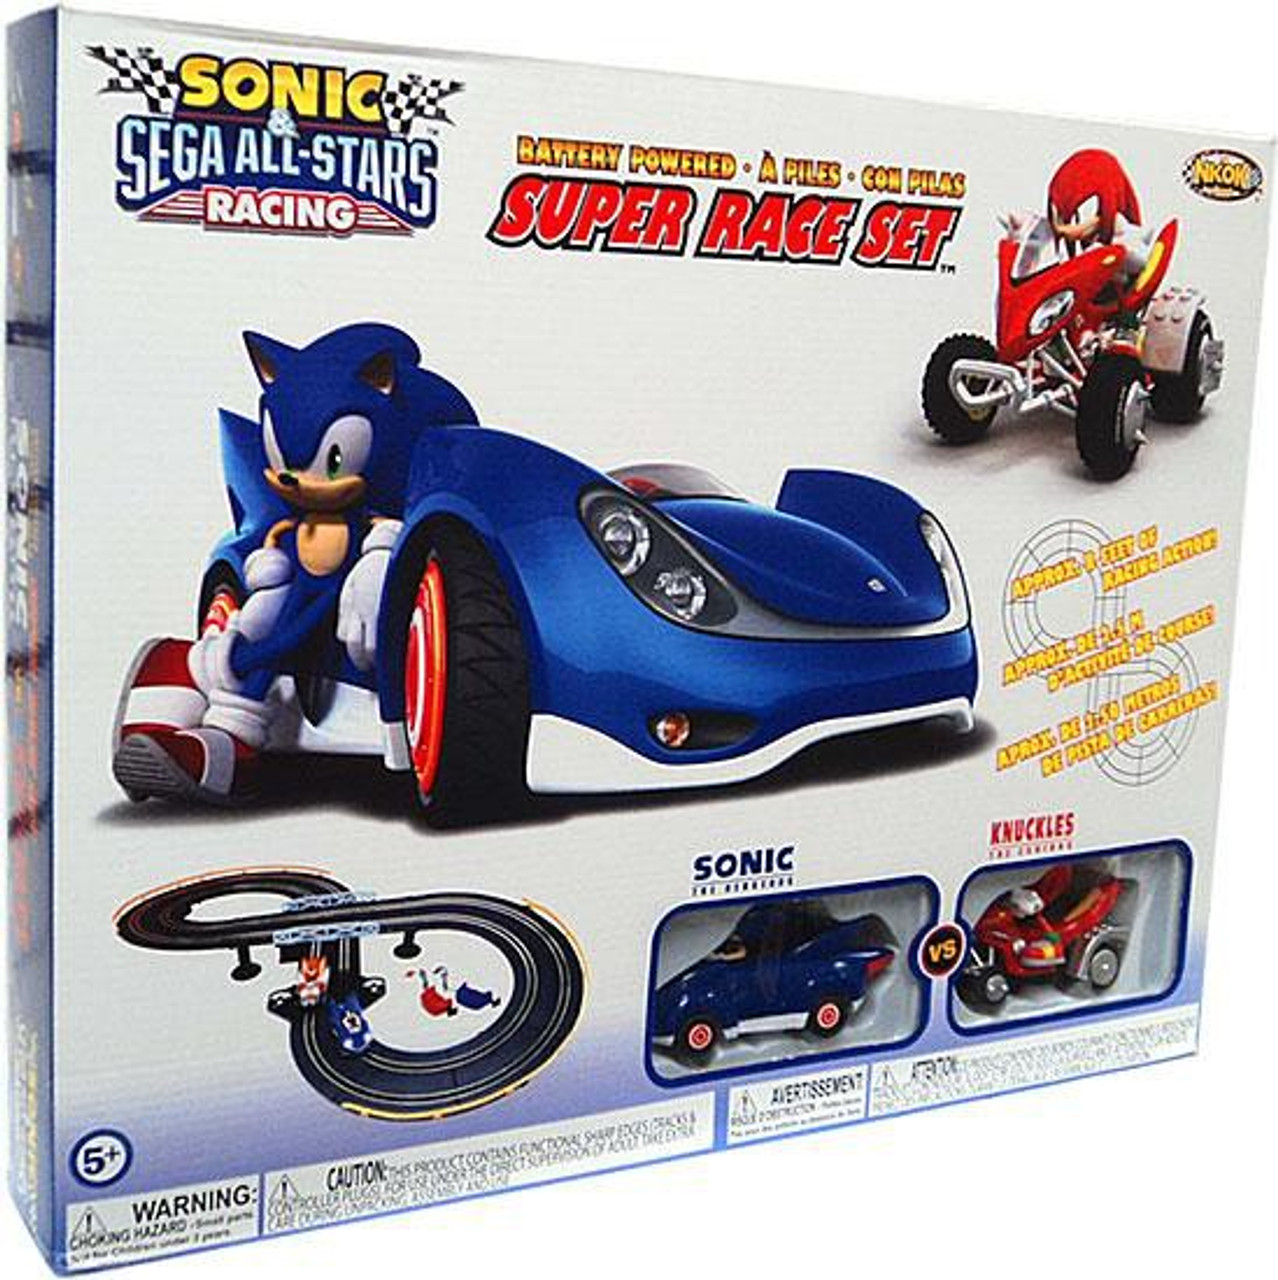 Sonic The Hedgehog Sega All-Stars Racing Super Race Set